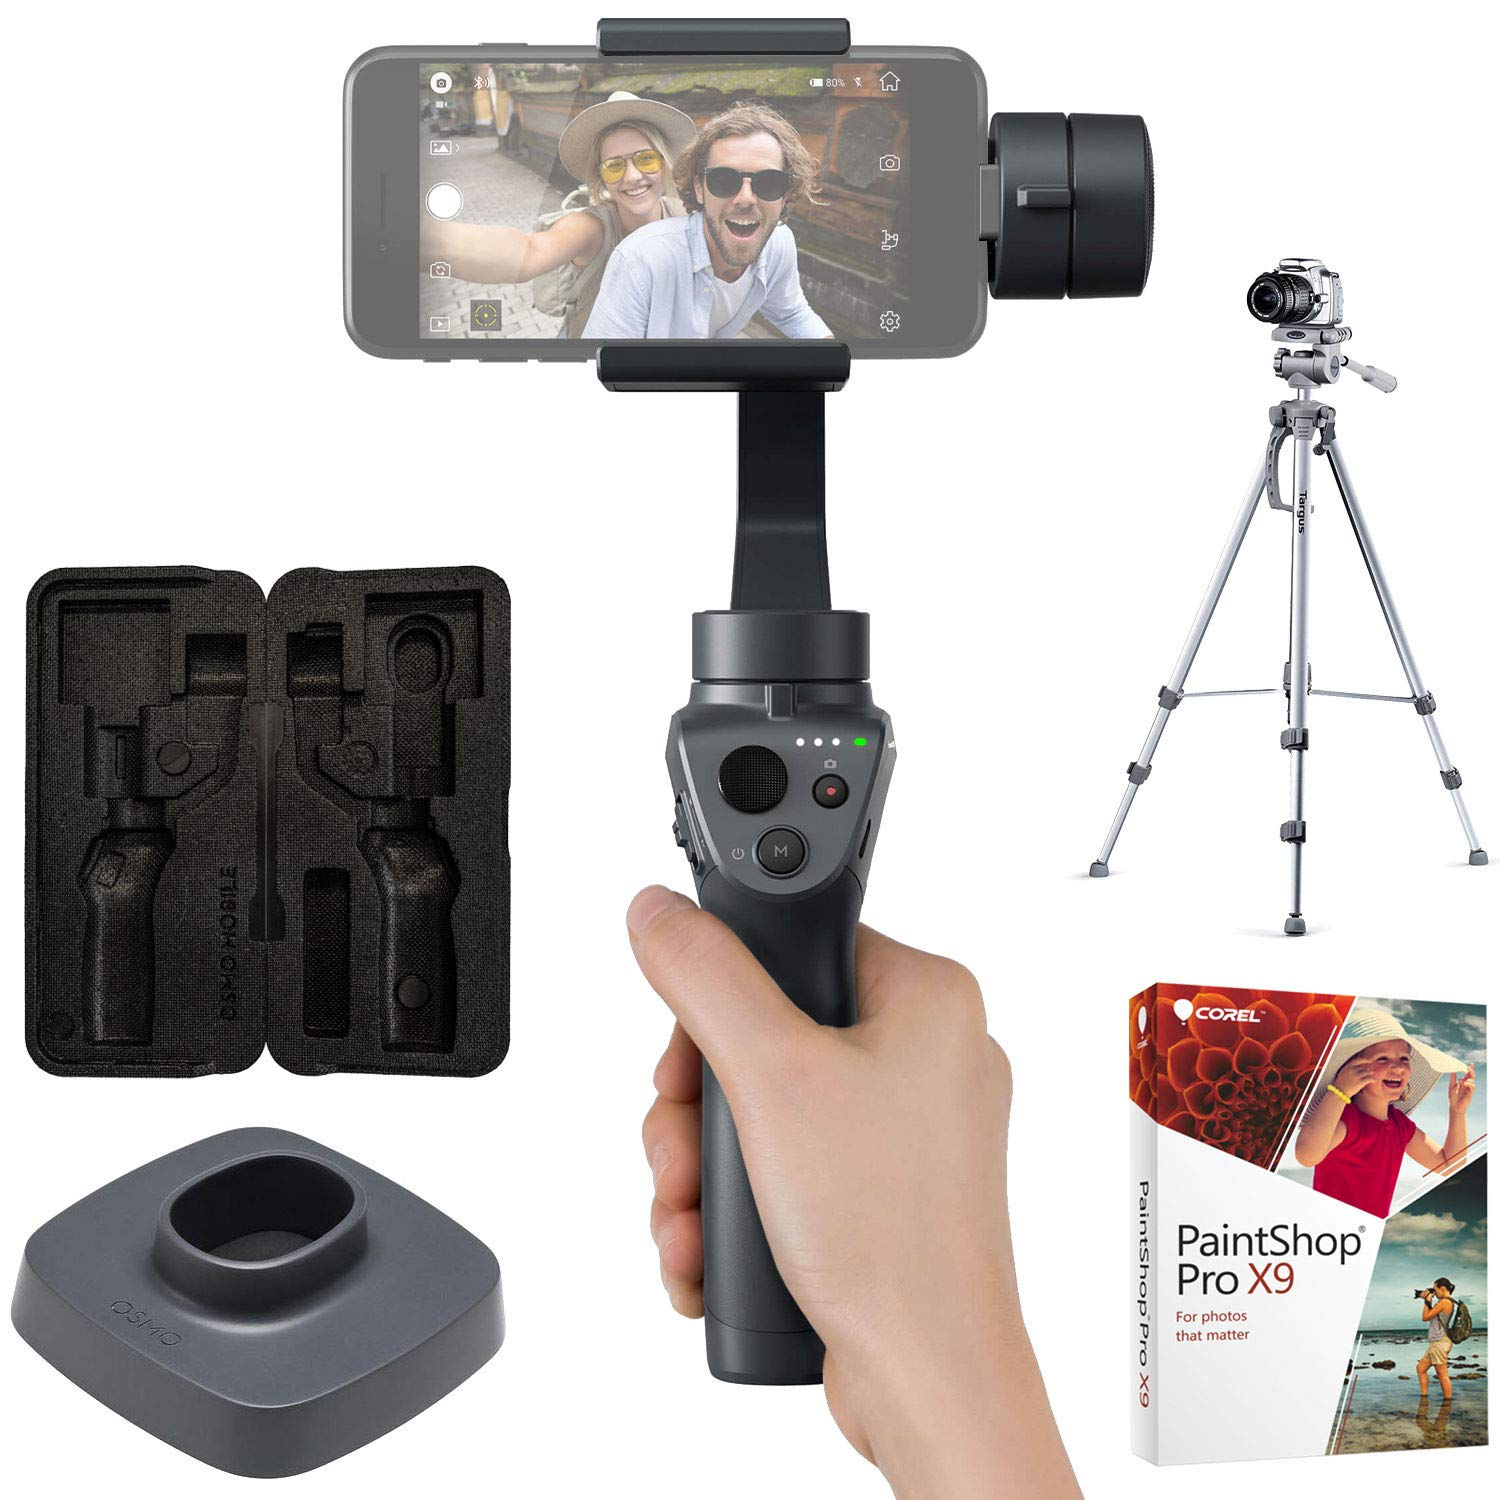 DJI Osmo Mobile 2 Handheld Smartphone Gimbal Stabilizer Creator Bundle with Full Size Tripod, Osmo Base, Carrying Case and Corel PaintShop Pro X9 Digital Download E2DJIOSMOMOB2